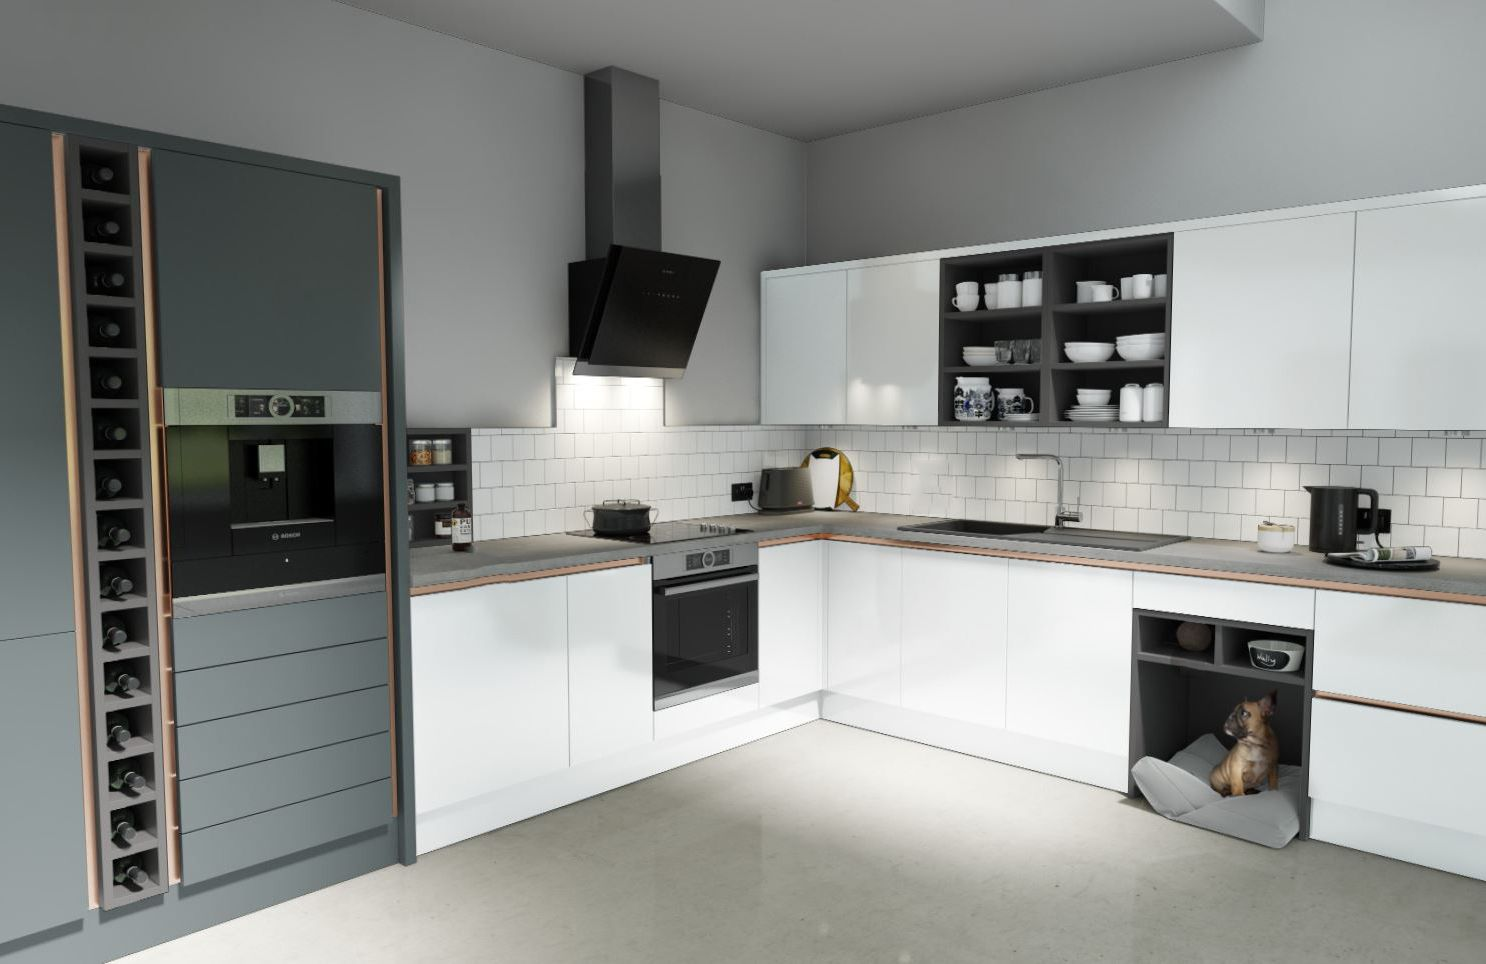 Luxury kitchens image by Johnny Findlay on Extension